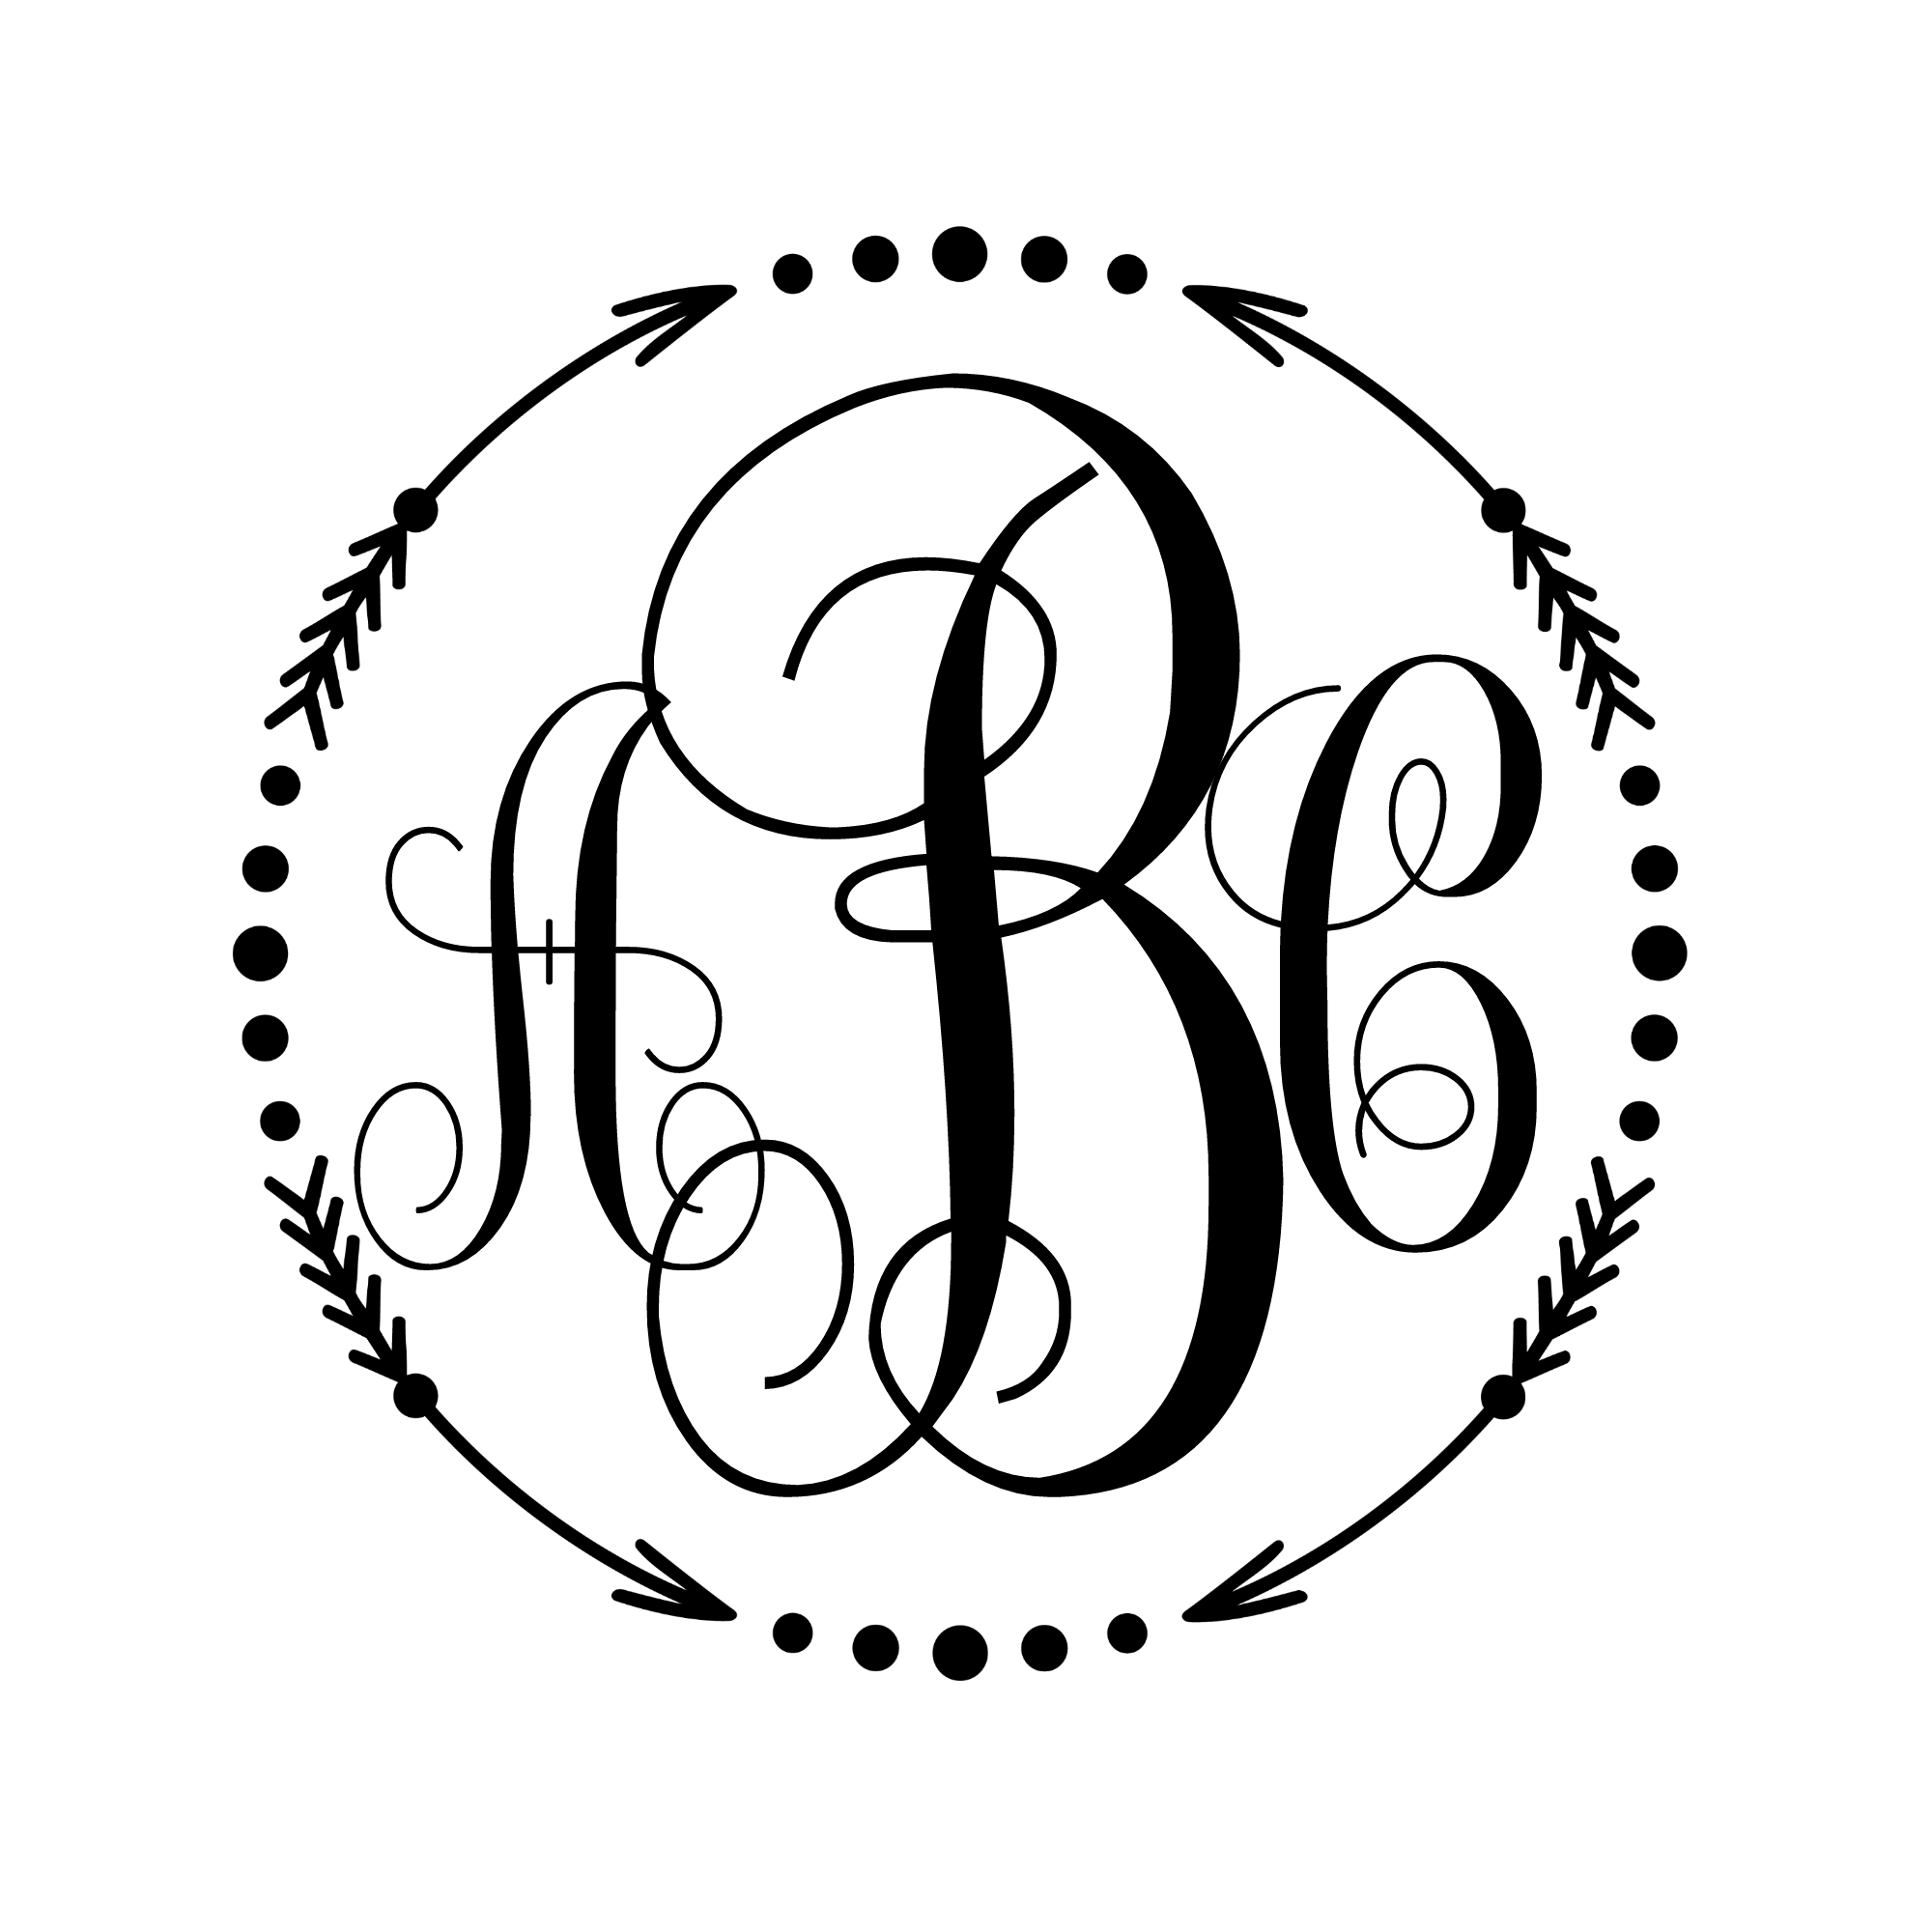 Arrow monogram circle clipart freeuse stock Simple Arrow Drawing at GetDrawings.com | Free for personal use ... freeuse stock